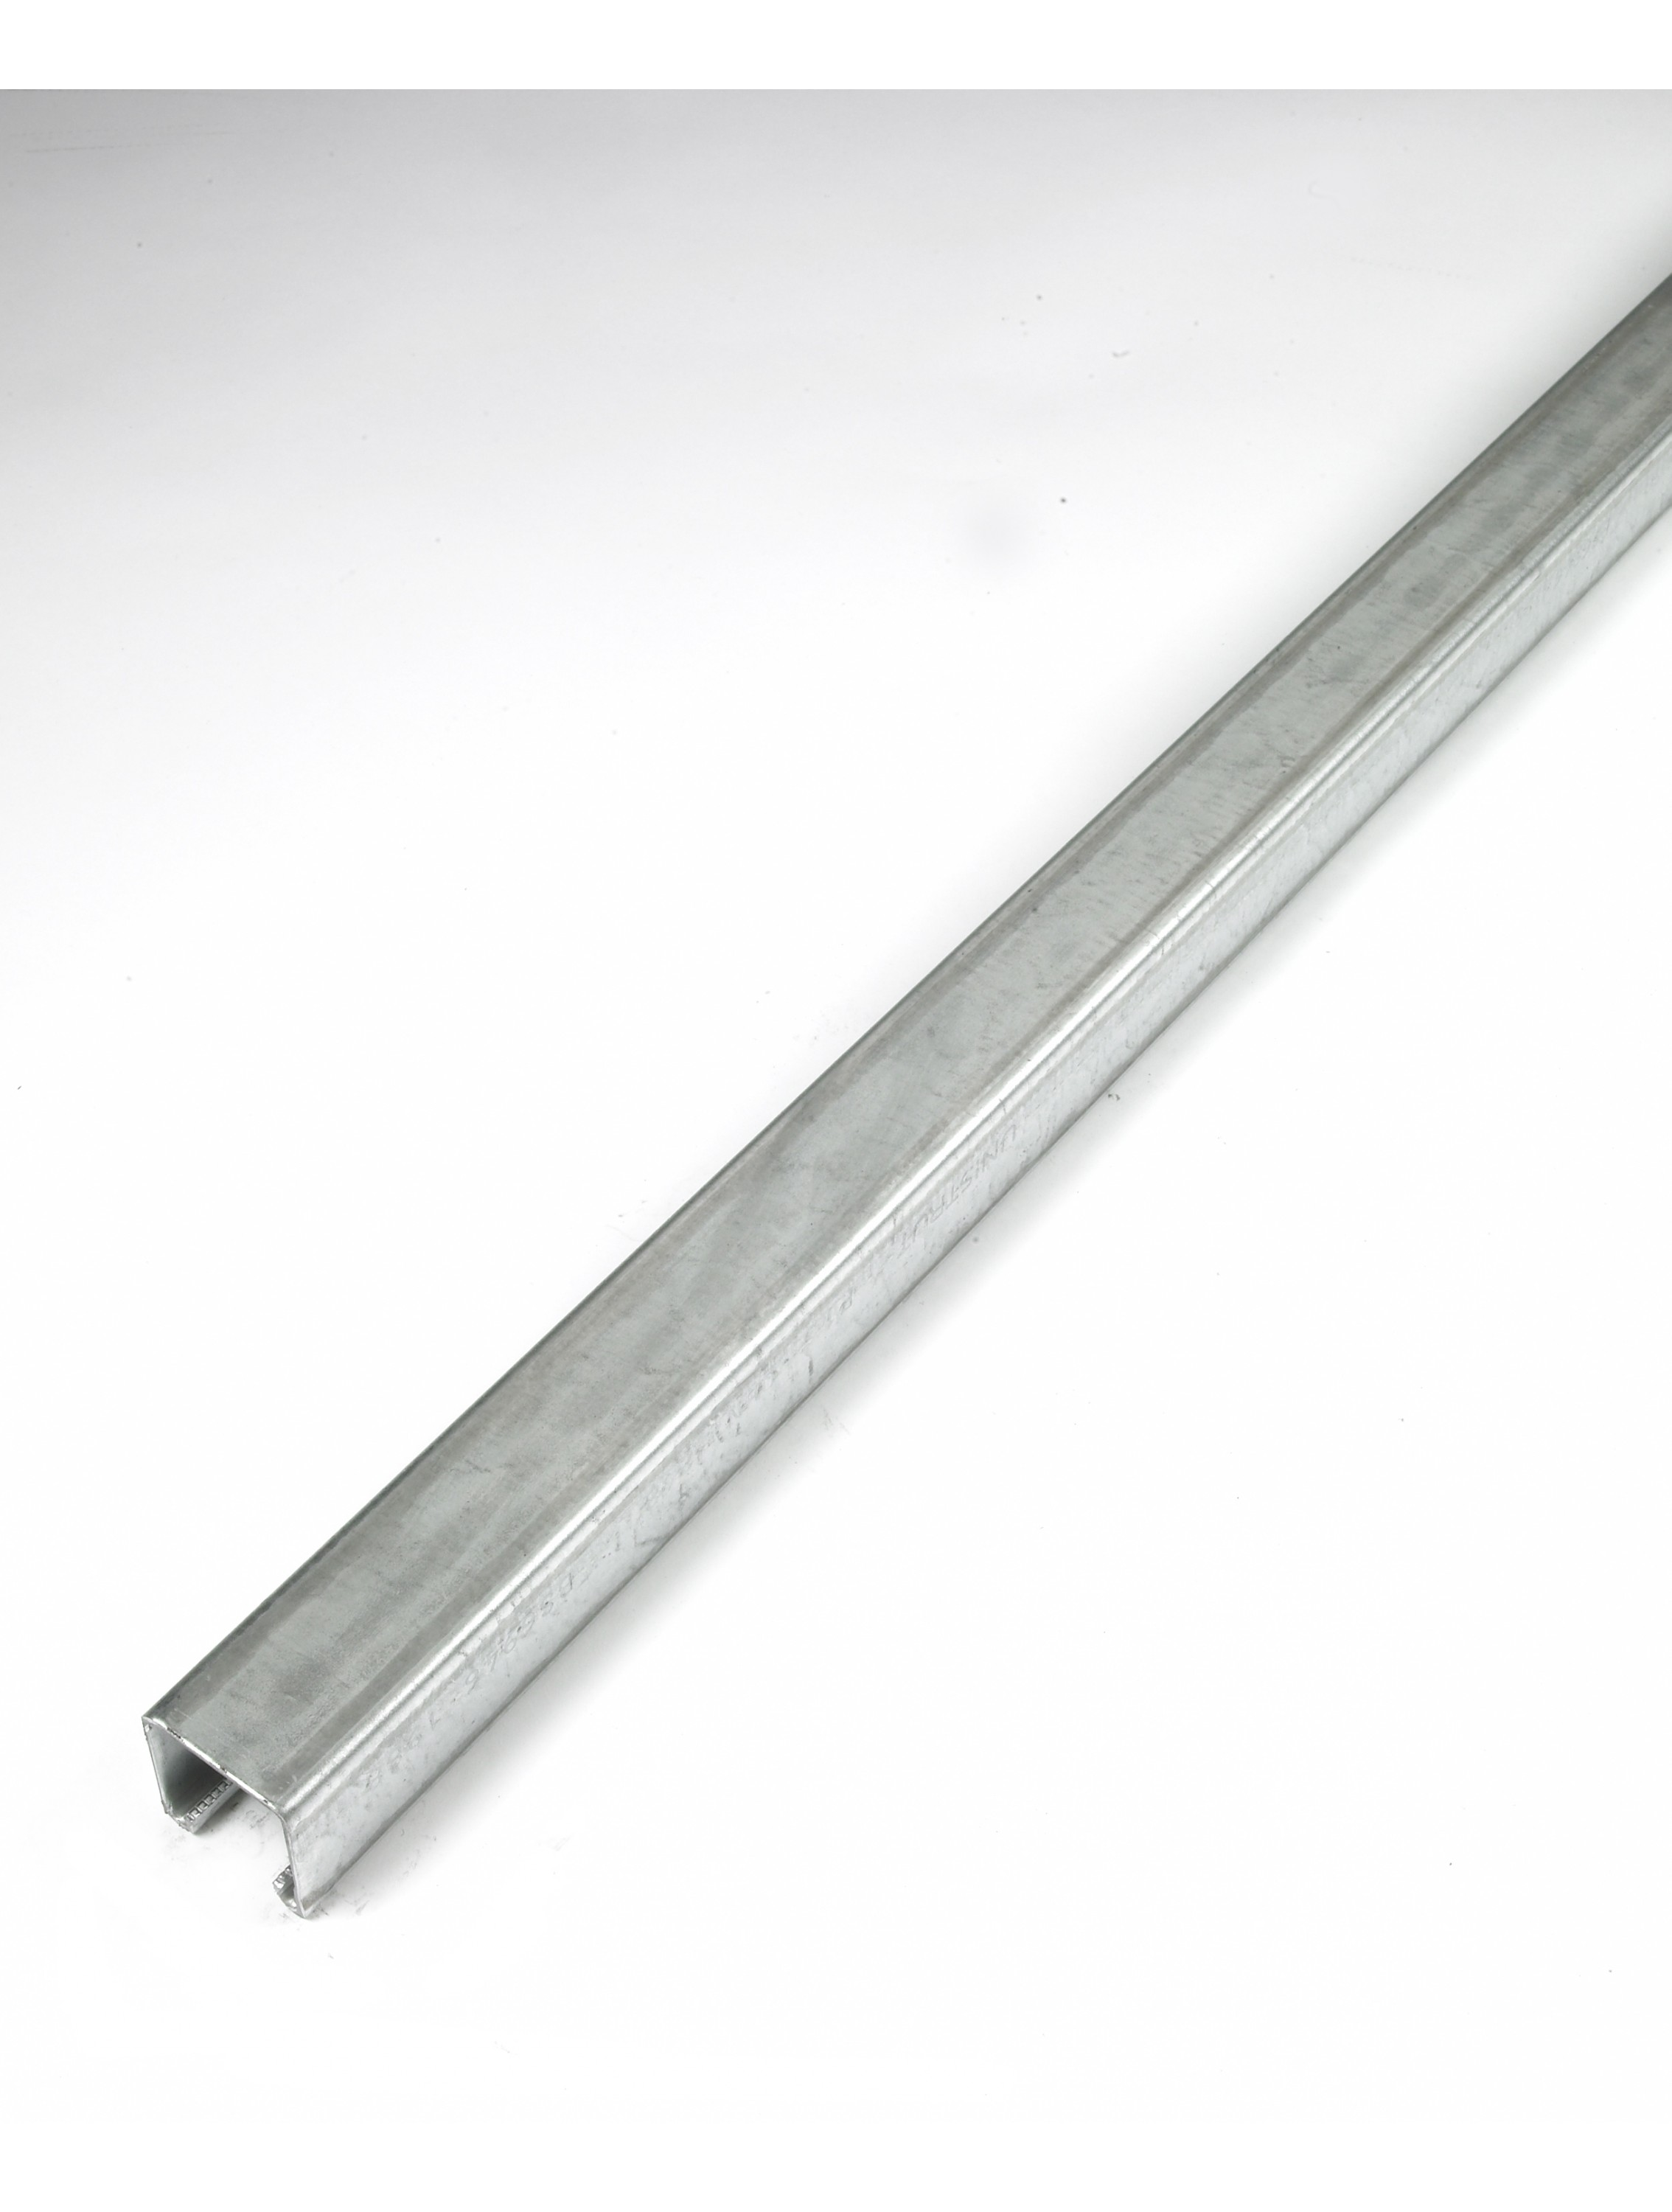 Unistrut Channel 41x41 Stainless Steel 3m (P1000X3SS)